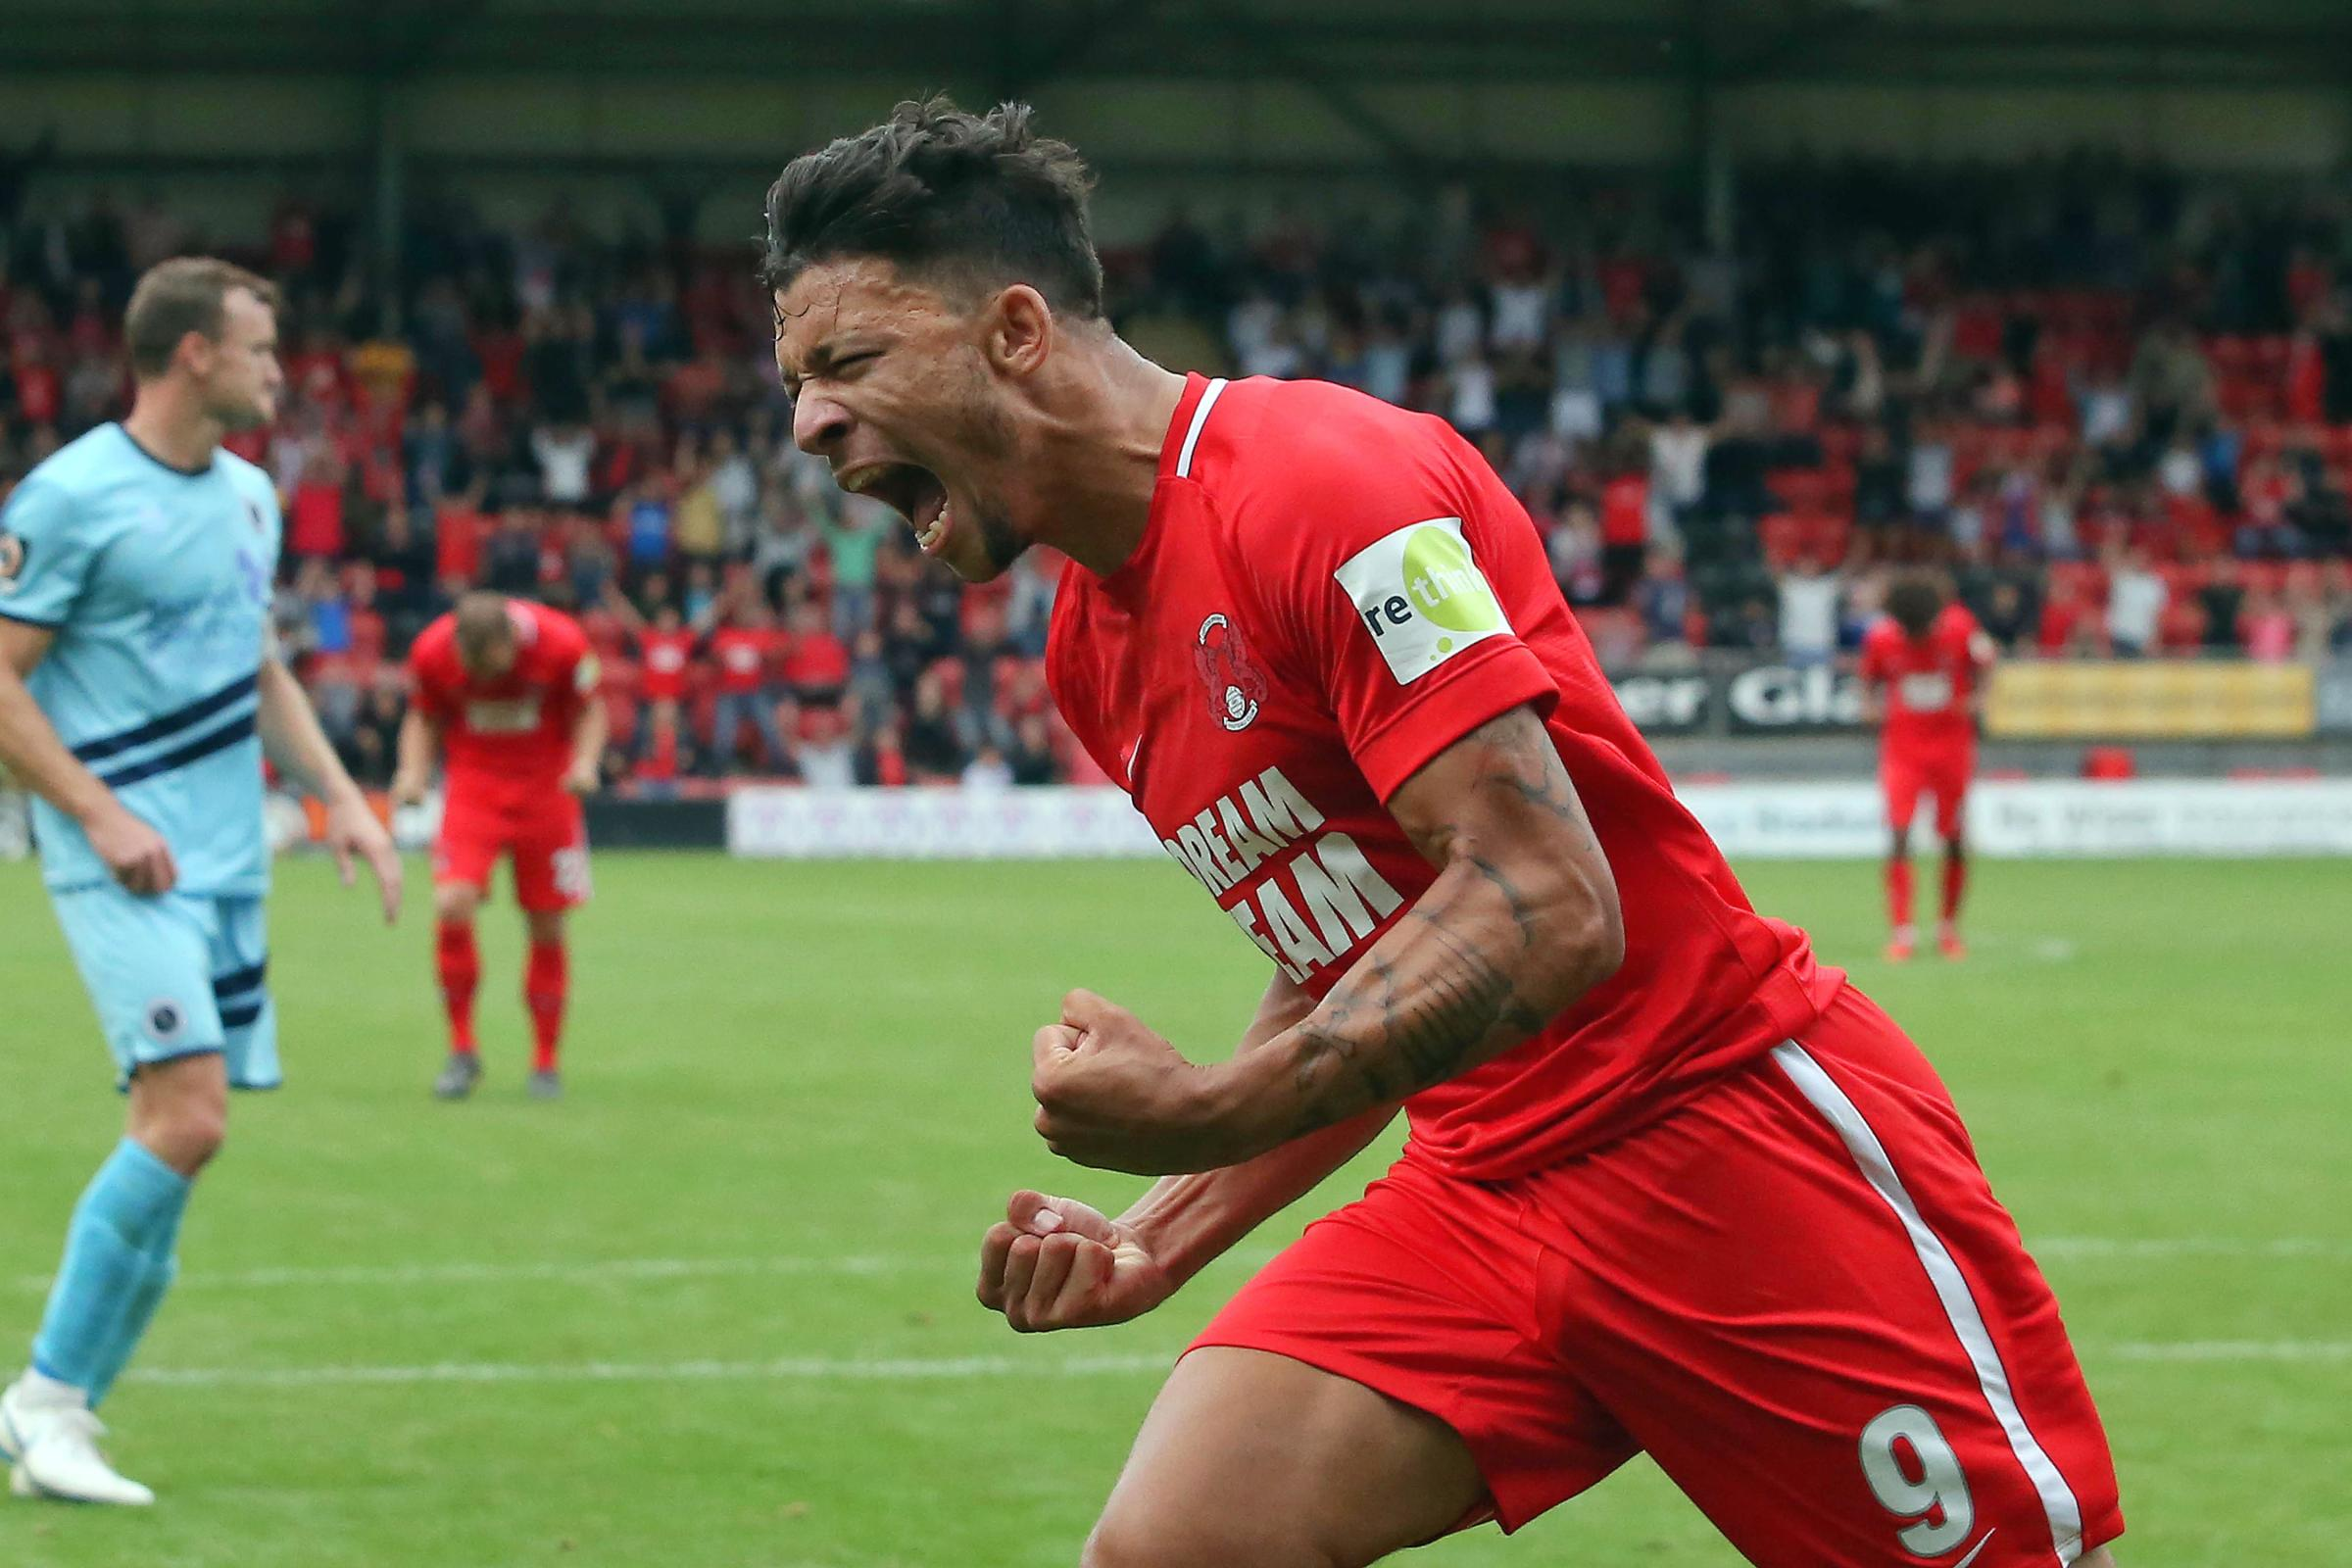 Macauley Bonne celebrates after scoring the winner against Boreham Wood earlier this season. Picture: Simon O'Connor.